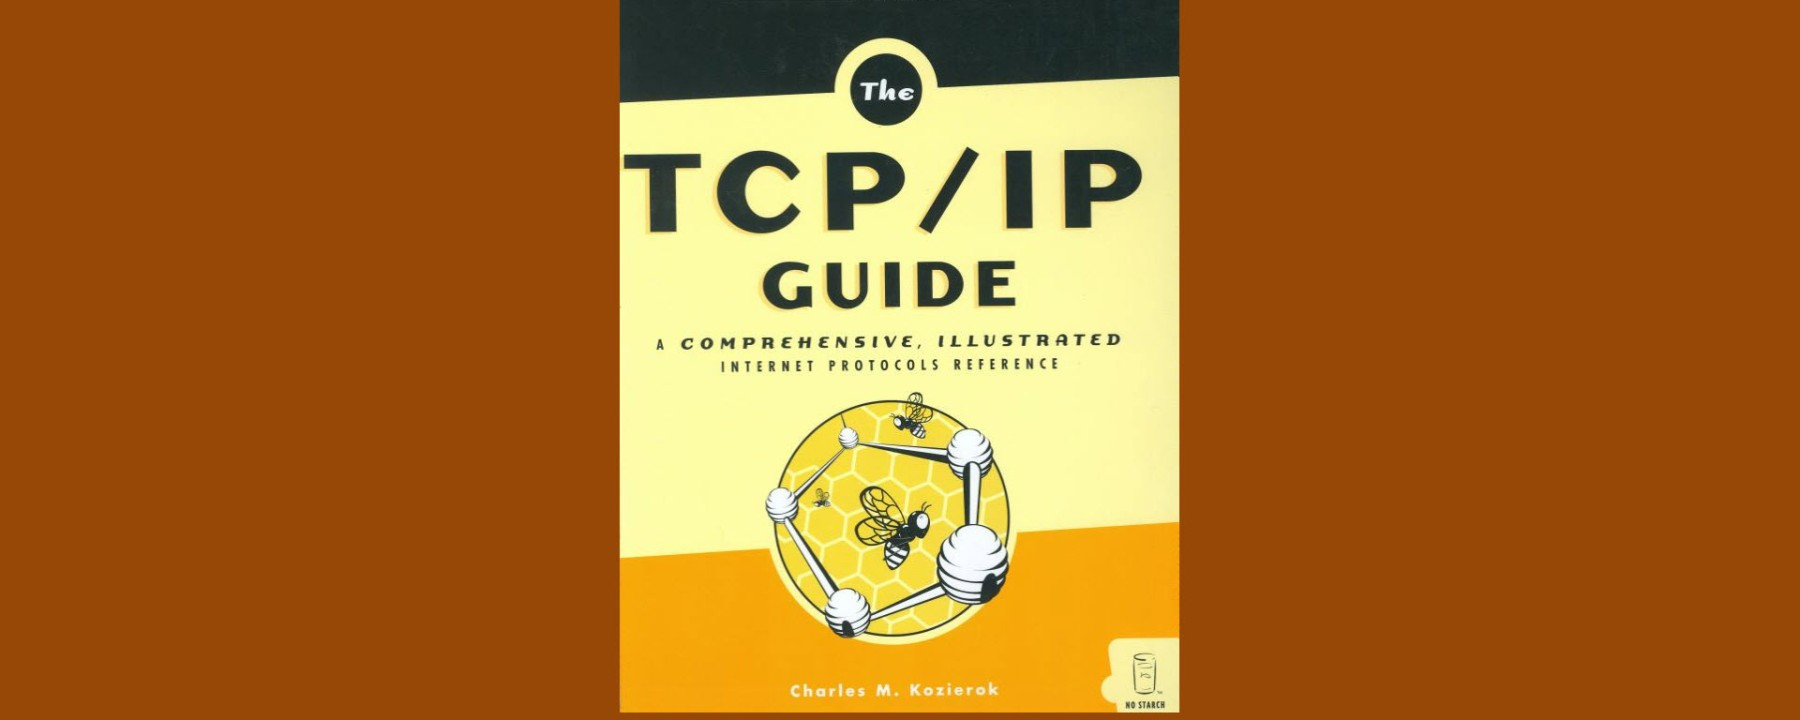 The TCP IP Guide, un estupendo ebook sobre redes gratuito